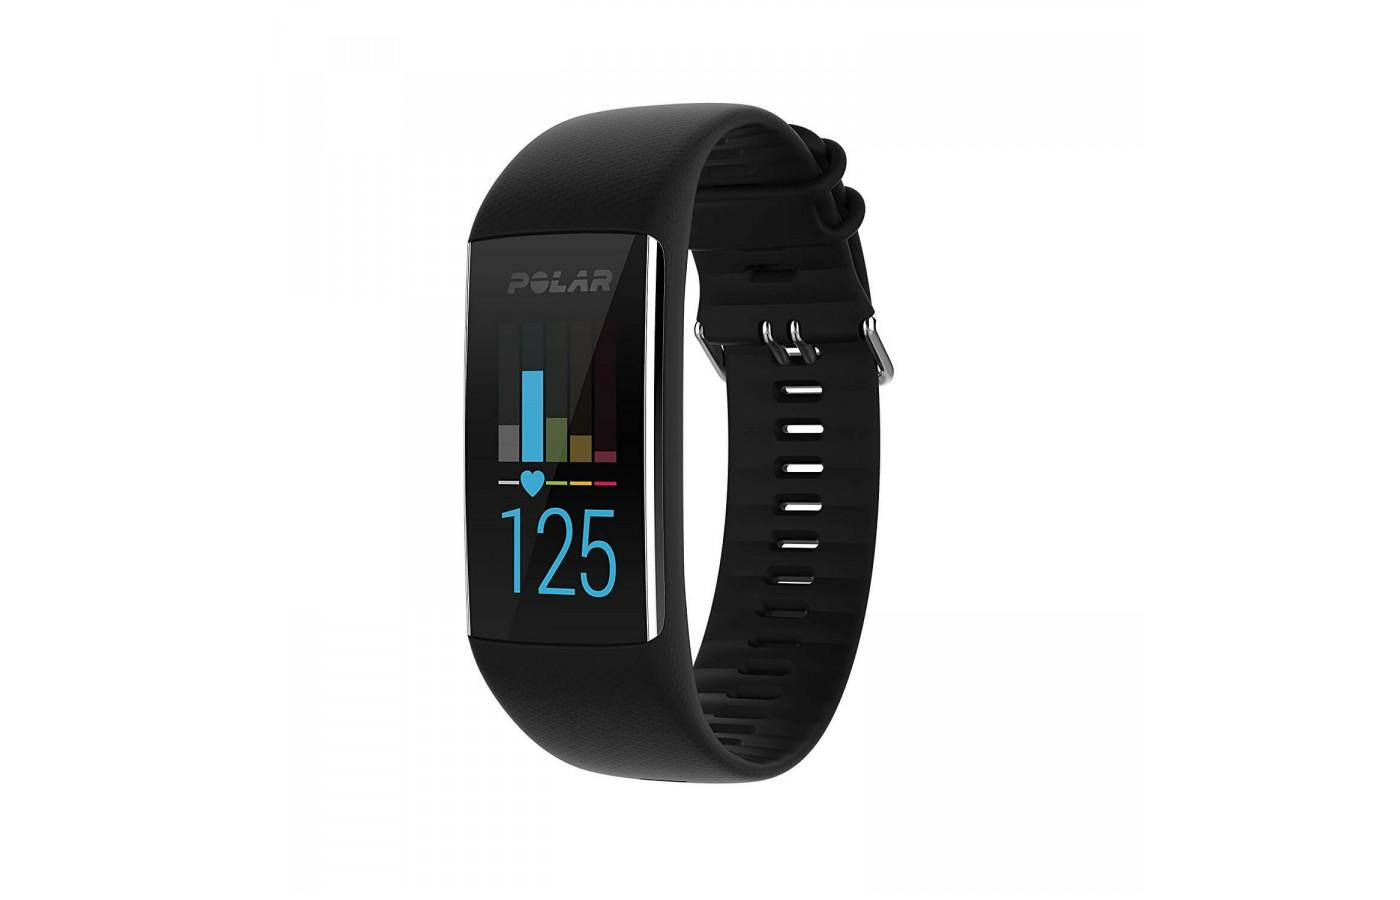 Polar A370 is also available in a black band